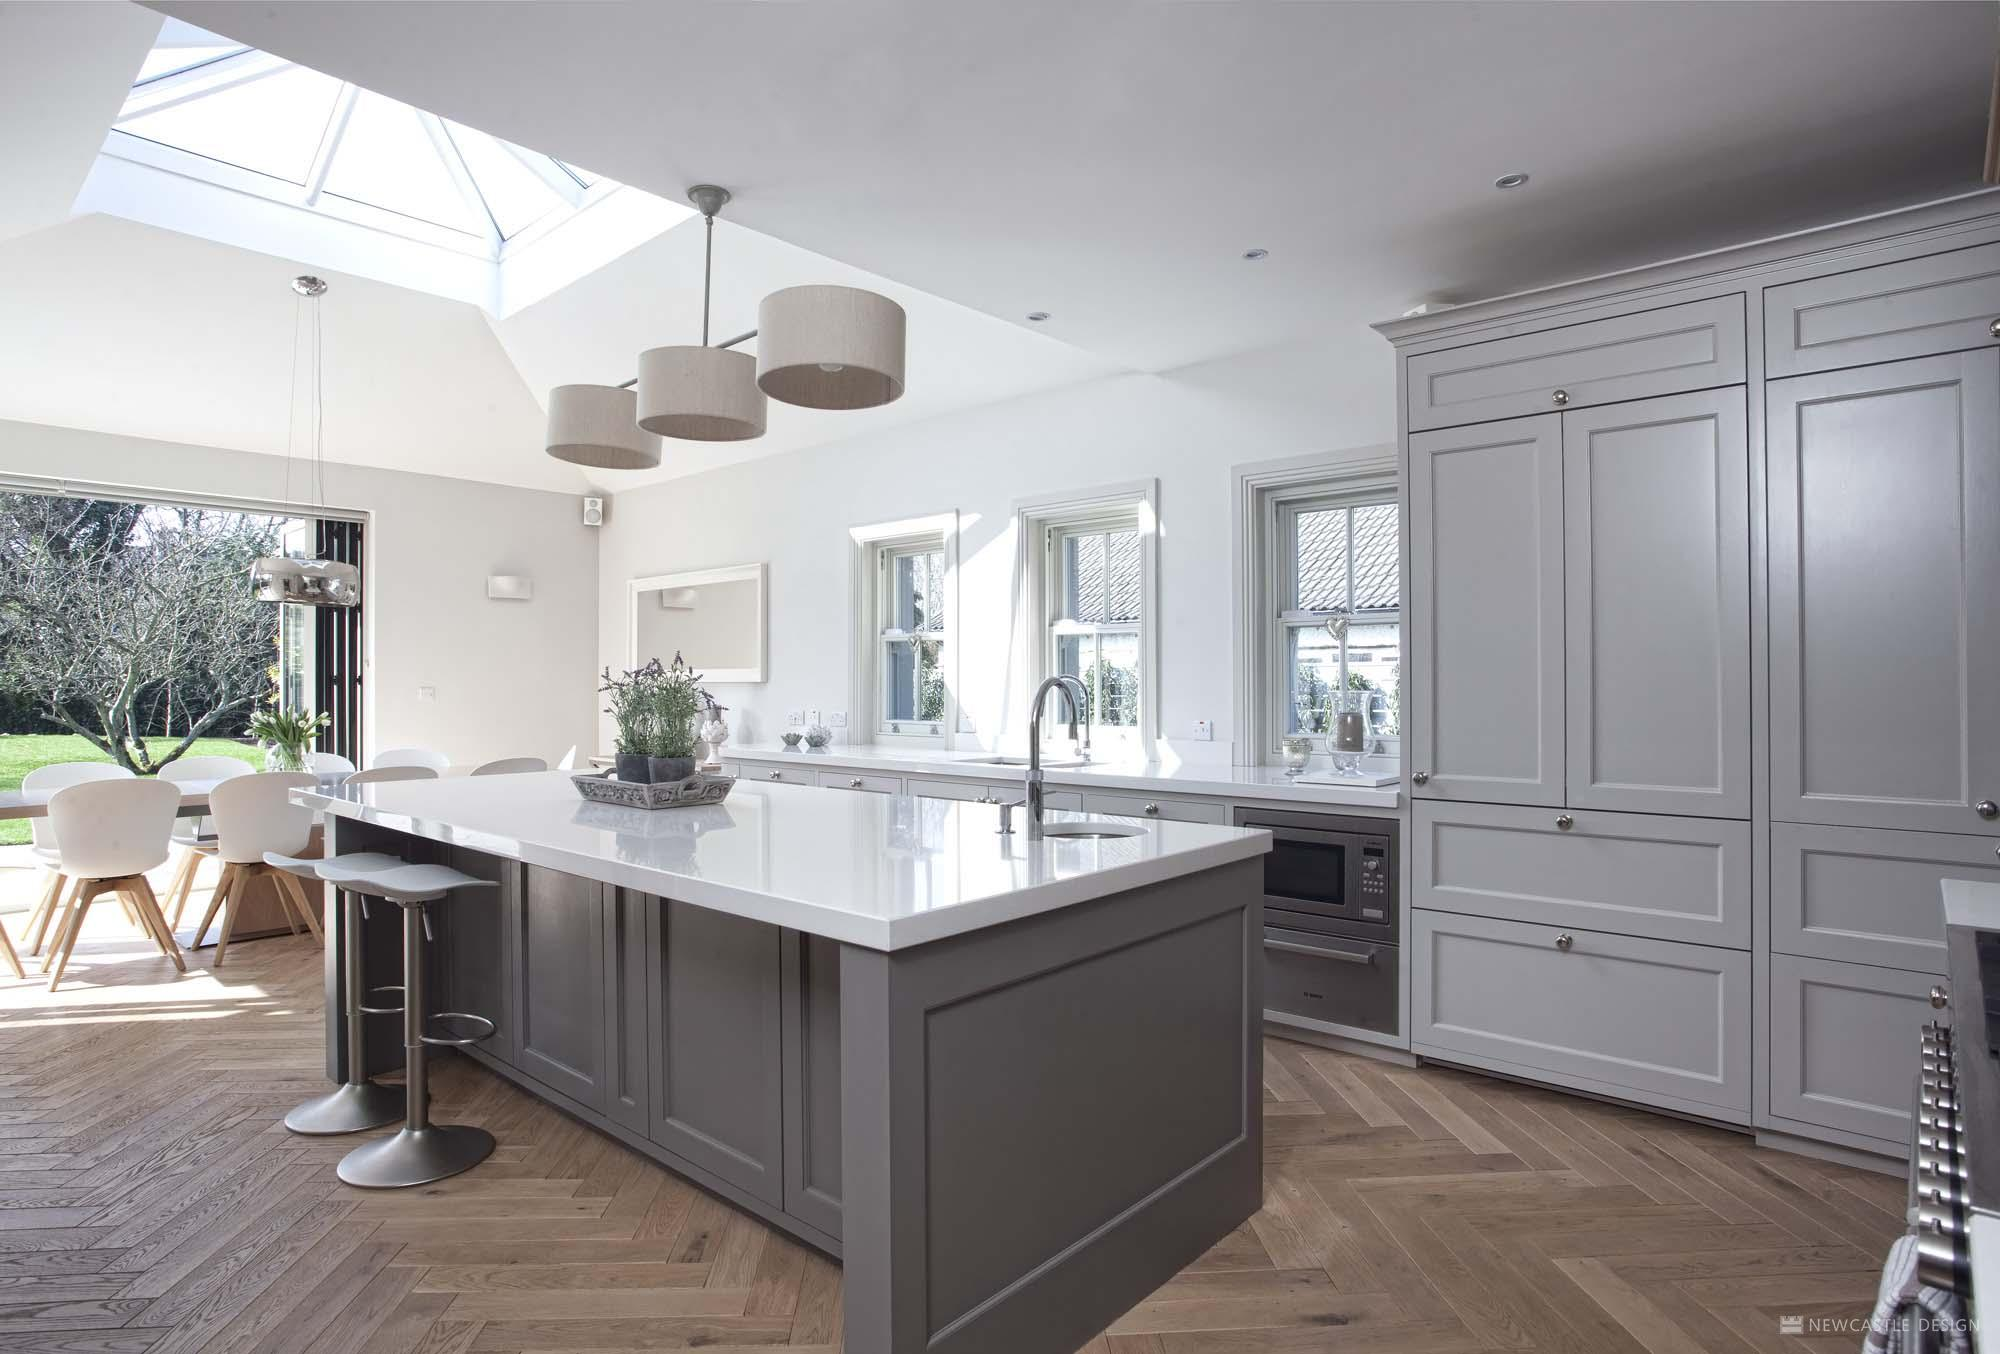 Newcastle design ireland kitchen company dublin for Kitchen ideas ireland